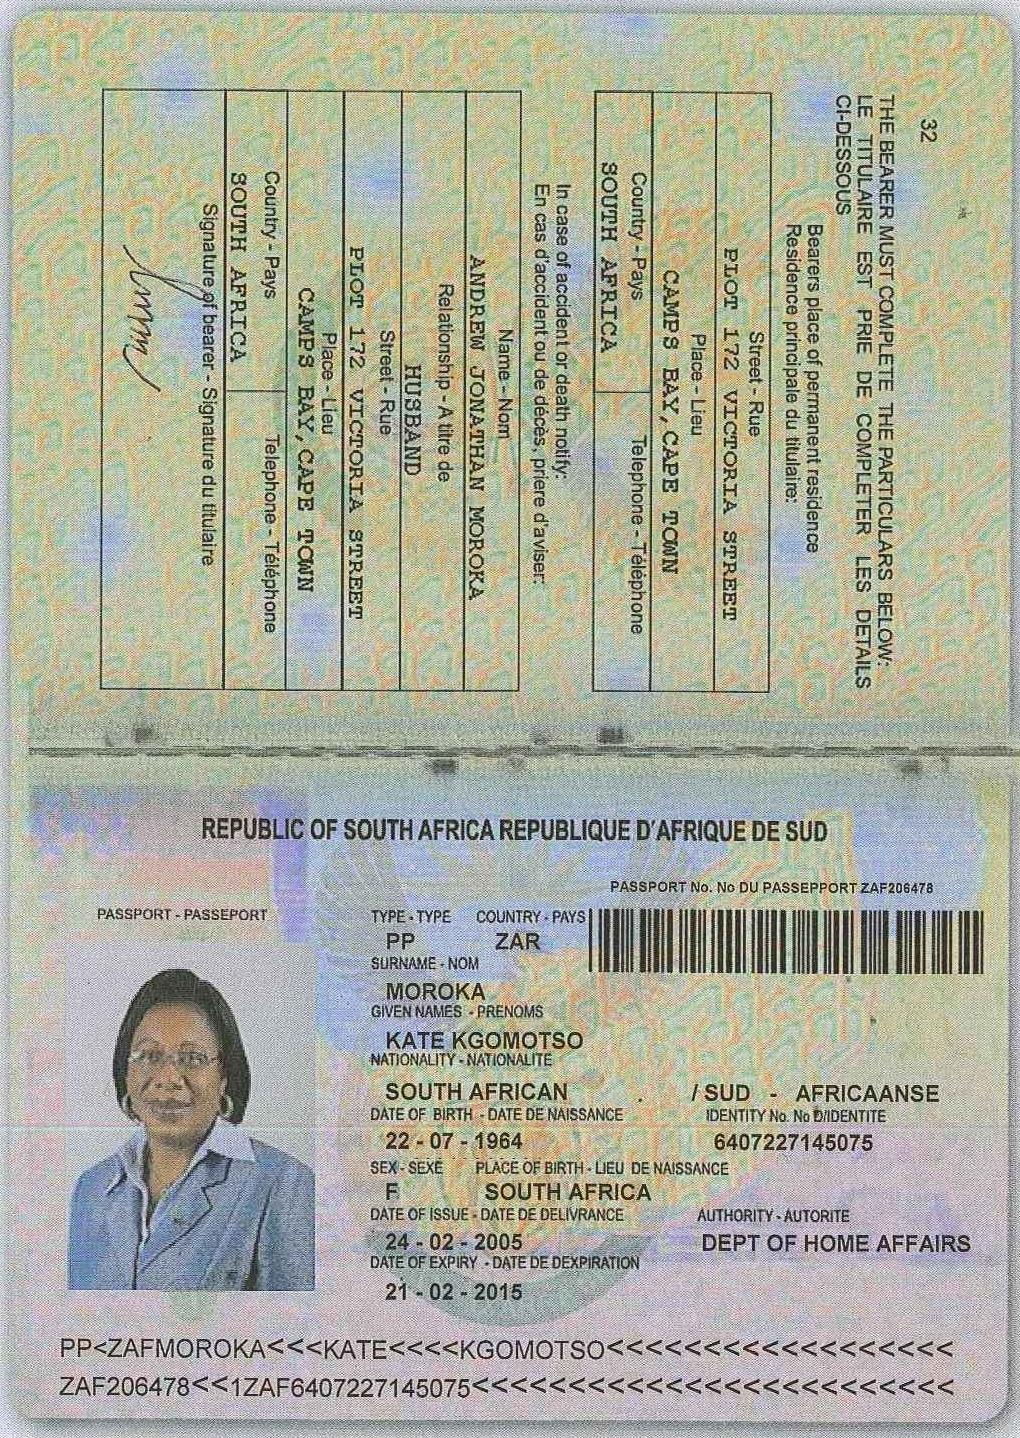 Original file name: PASSPORT 1 kate moroka..jpg